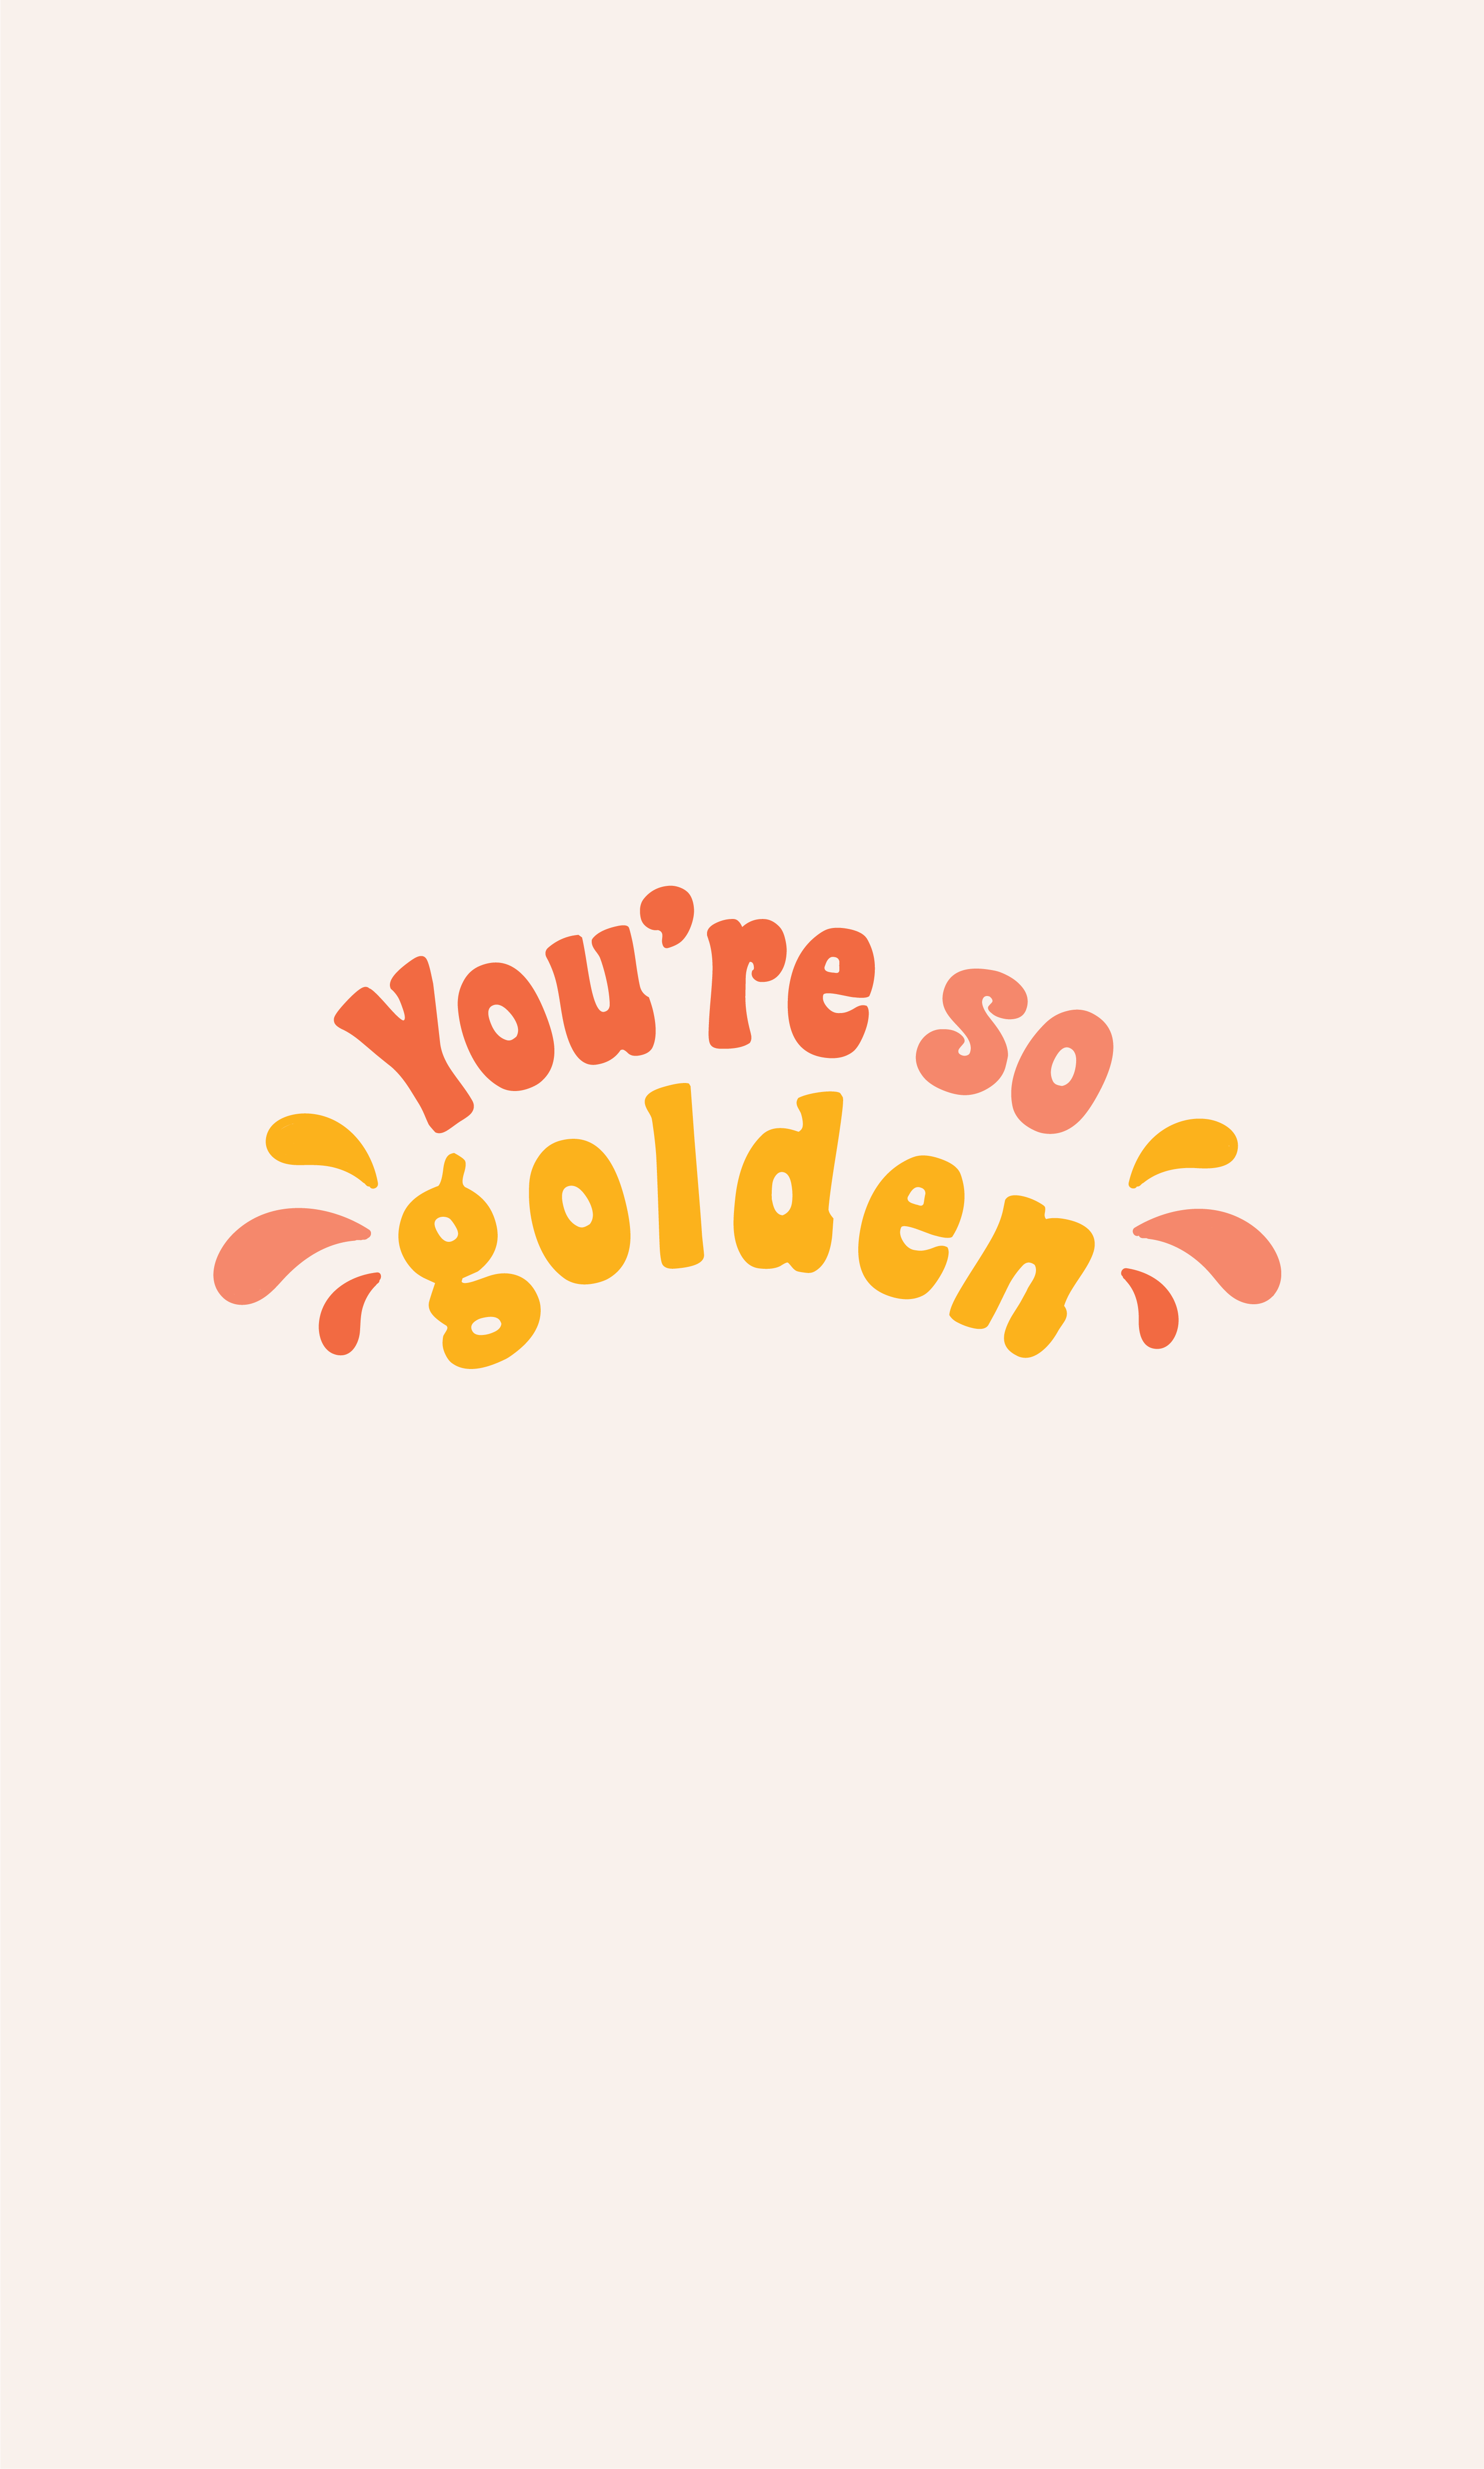 You Re So Golden Wallpaper Harry Styles Fine Line Lyrics In 2020 Harry Styles Wallpaper Wall Collage Bedroom Wall Collage